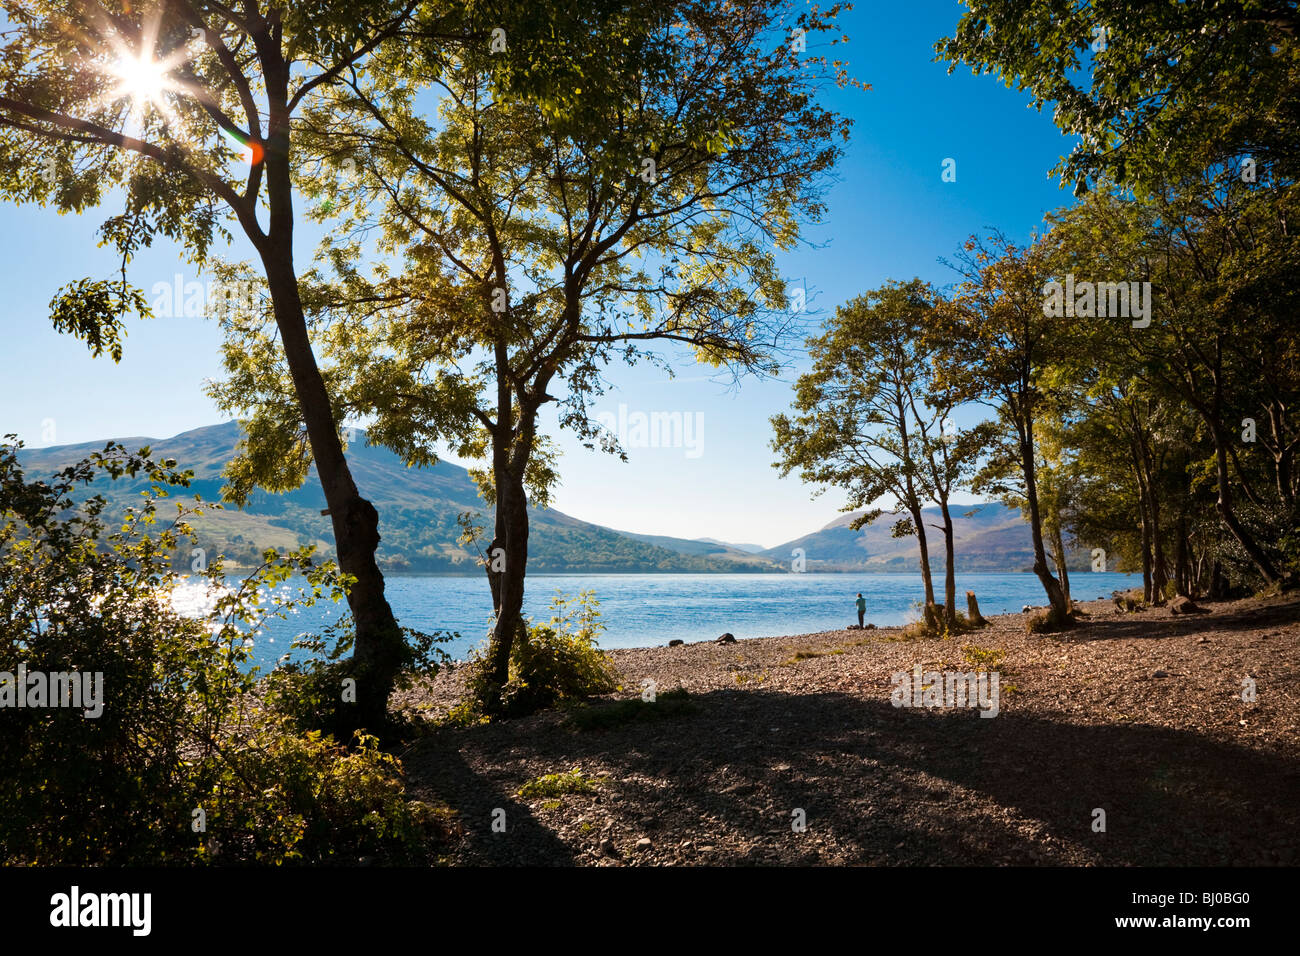 Views of Lake with landscape and mountains, Loch Earn Scotland - Stock Image